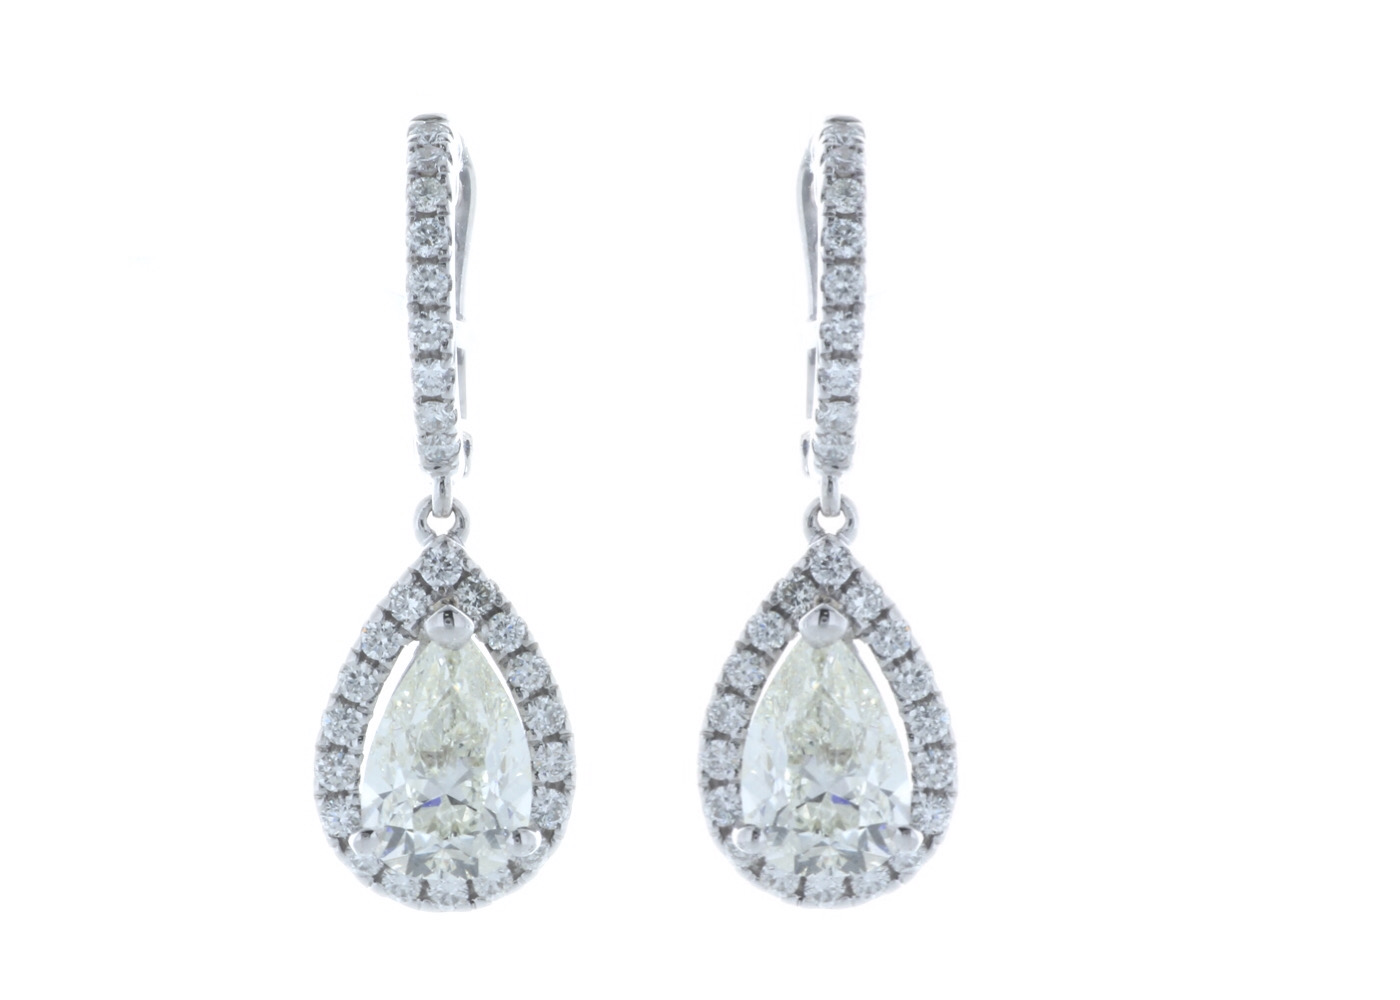 18ct White Gold Pear Shape Halo Drop Earring 2.47 Carats